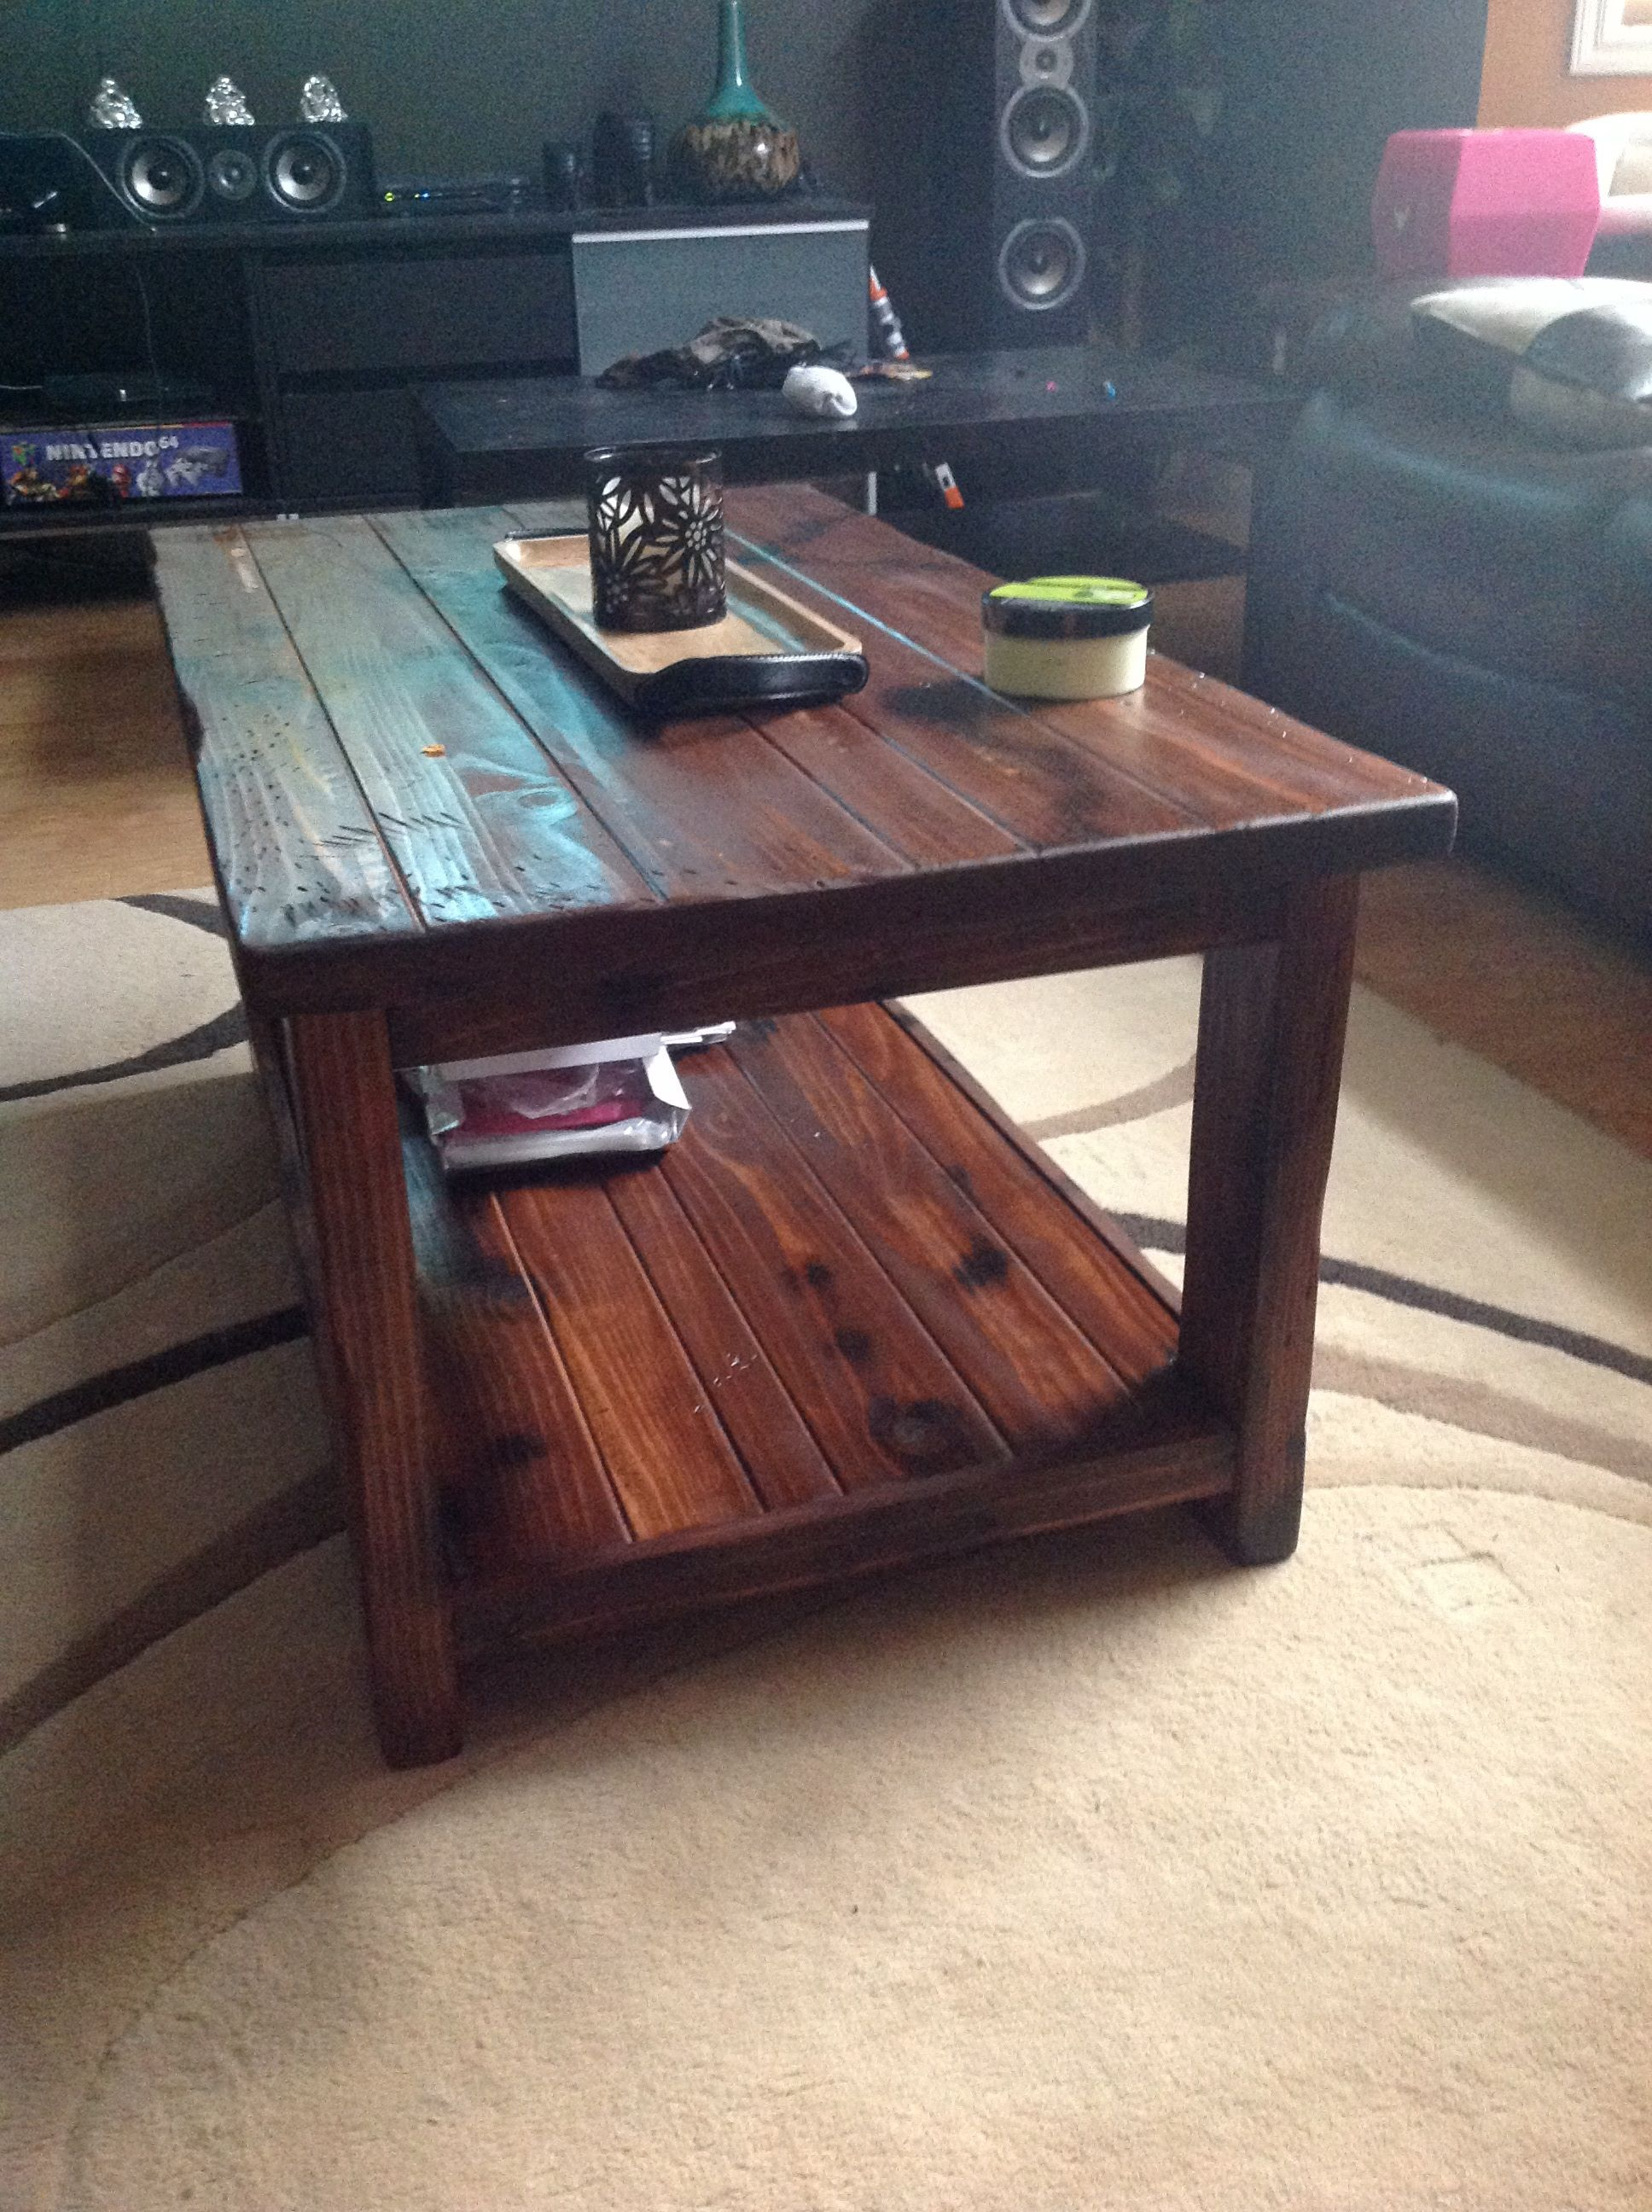 Ikea Rekarne table hack